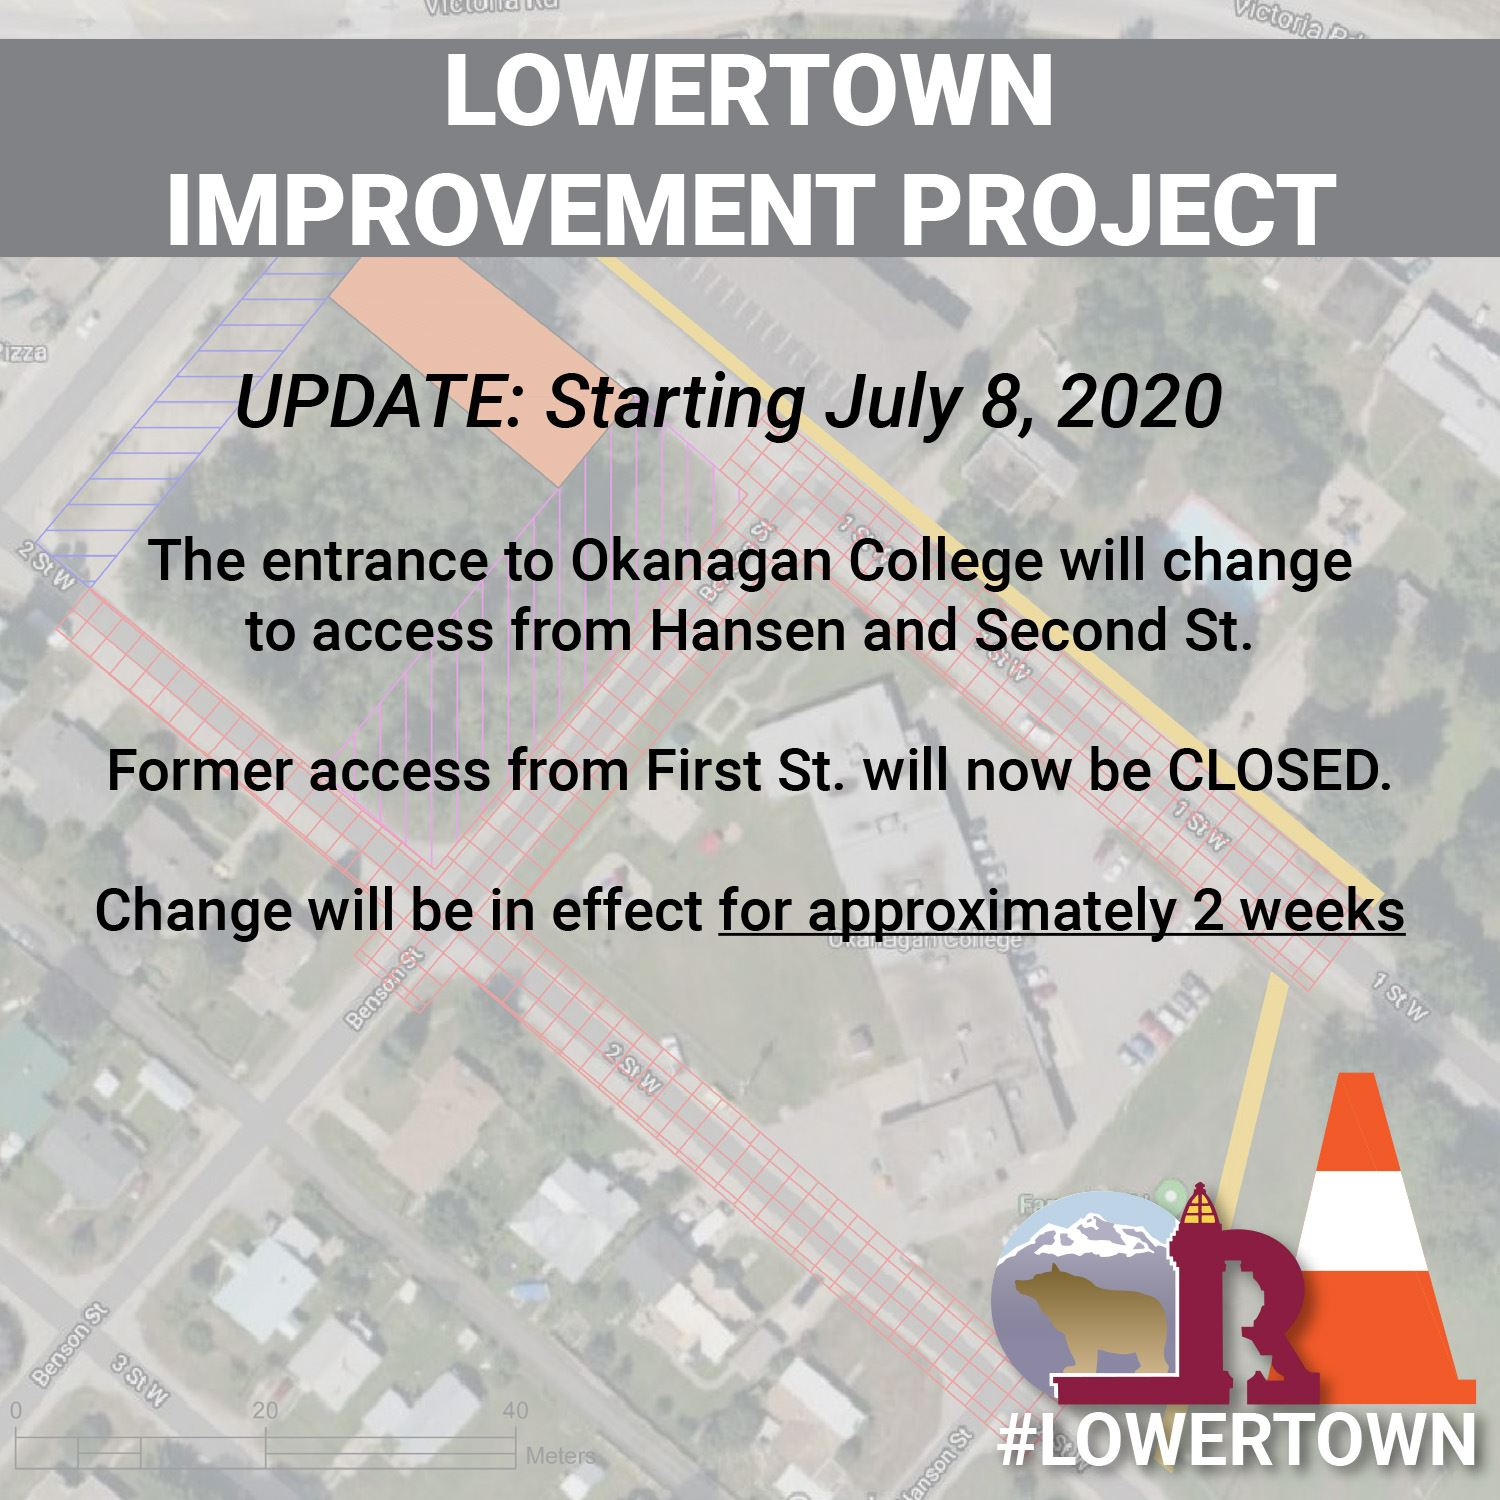 Lowertown_Construction Updates_2020-07-08